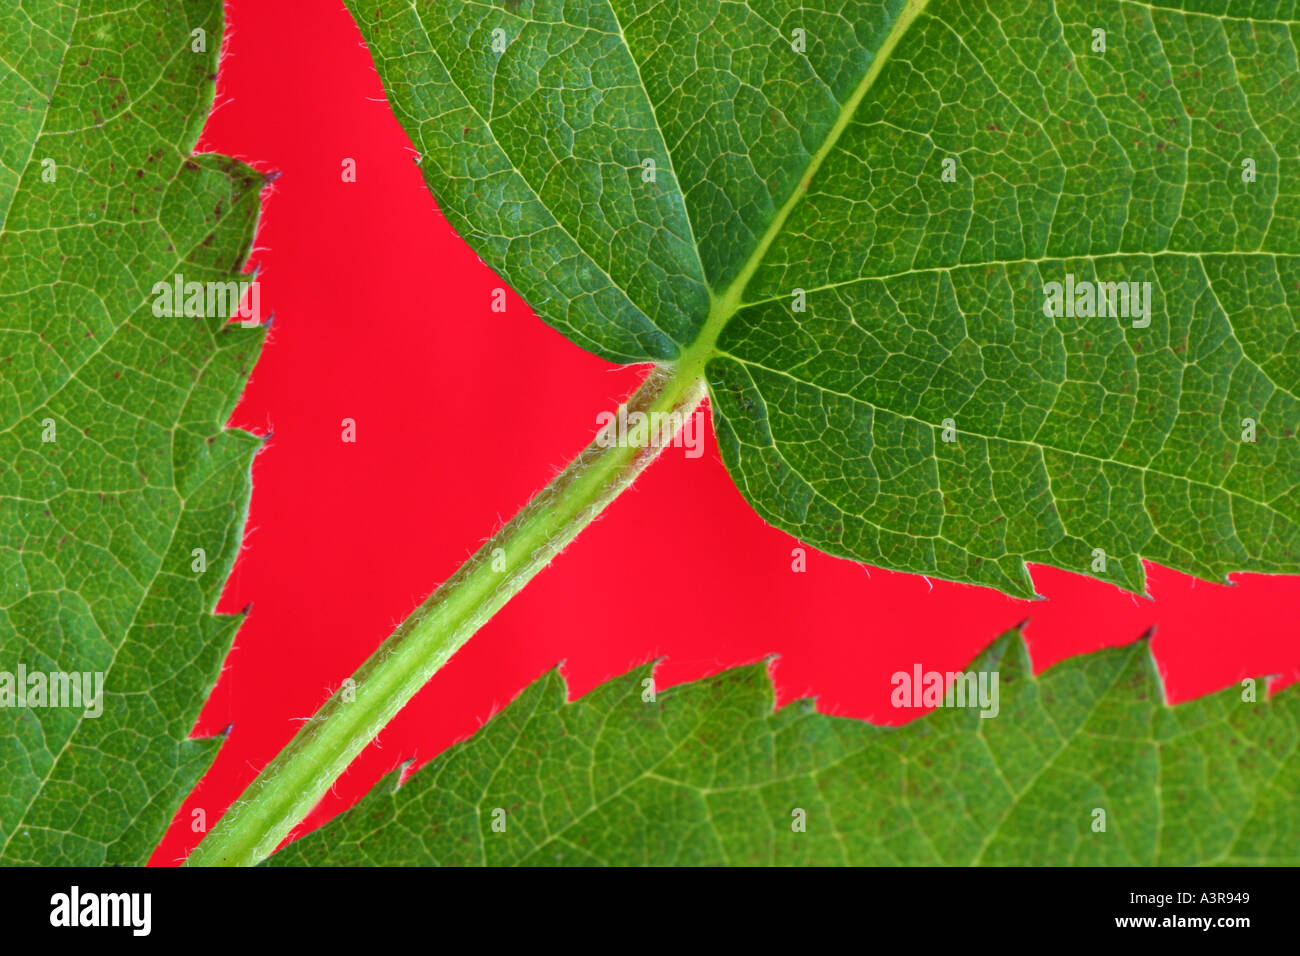 Bright green blackberry leaves against a red background - Stock Image